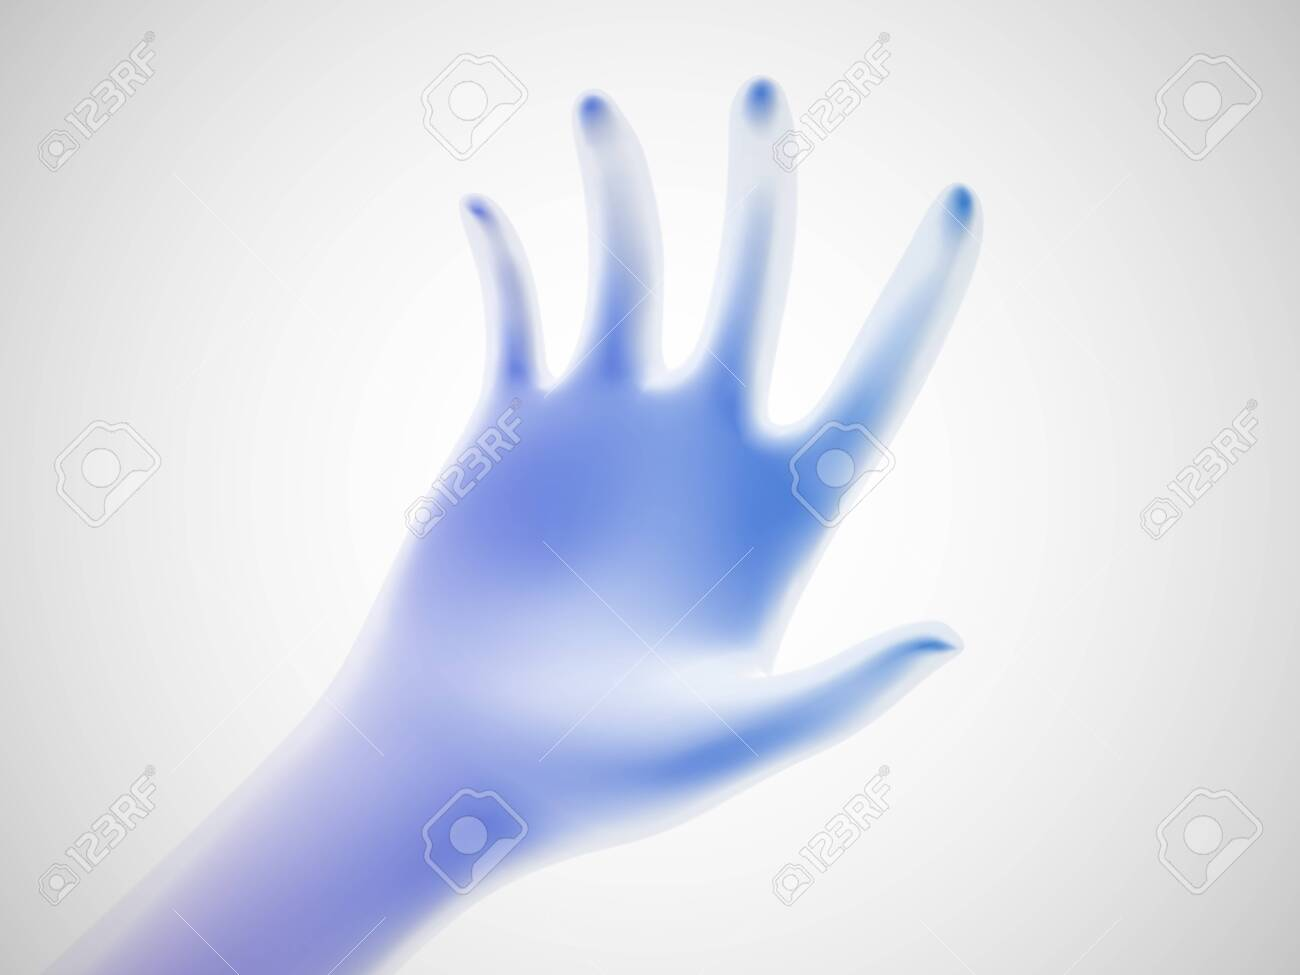 3D blue open palm offering something. Concept of charity, care and online support. Vector illustration of inviting gesture. Blue hand giving out something on white background. - 146807024